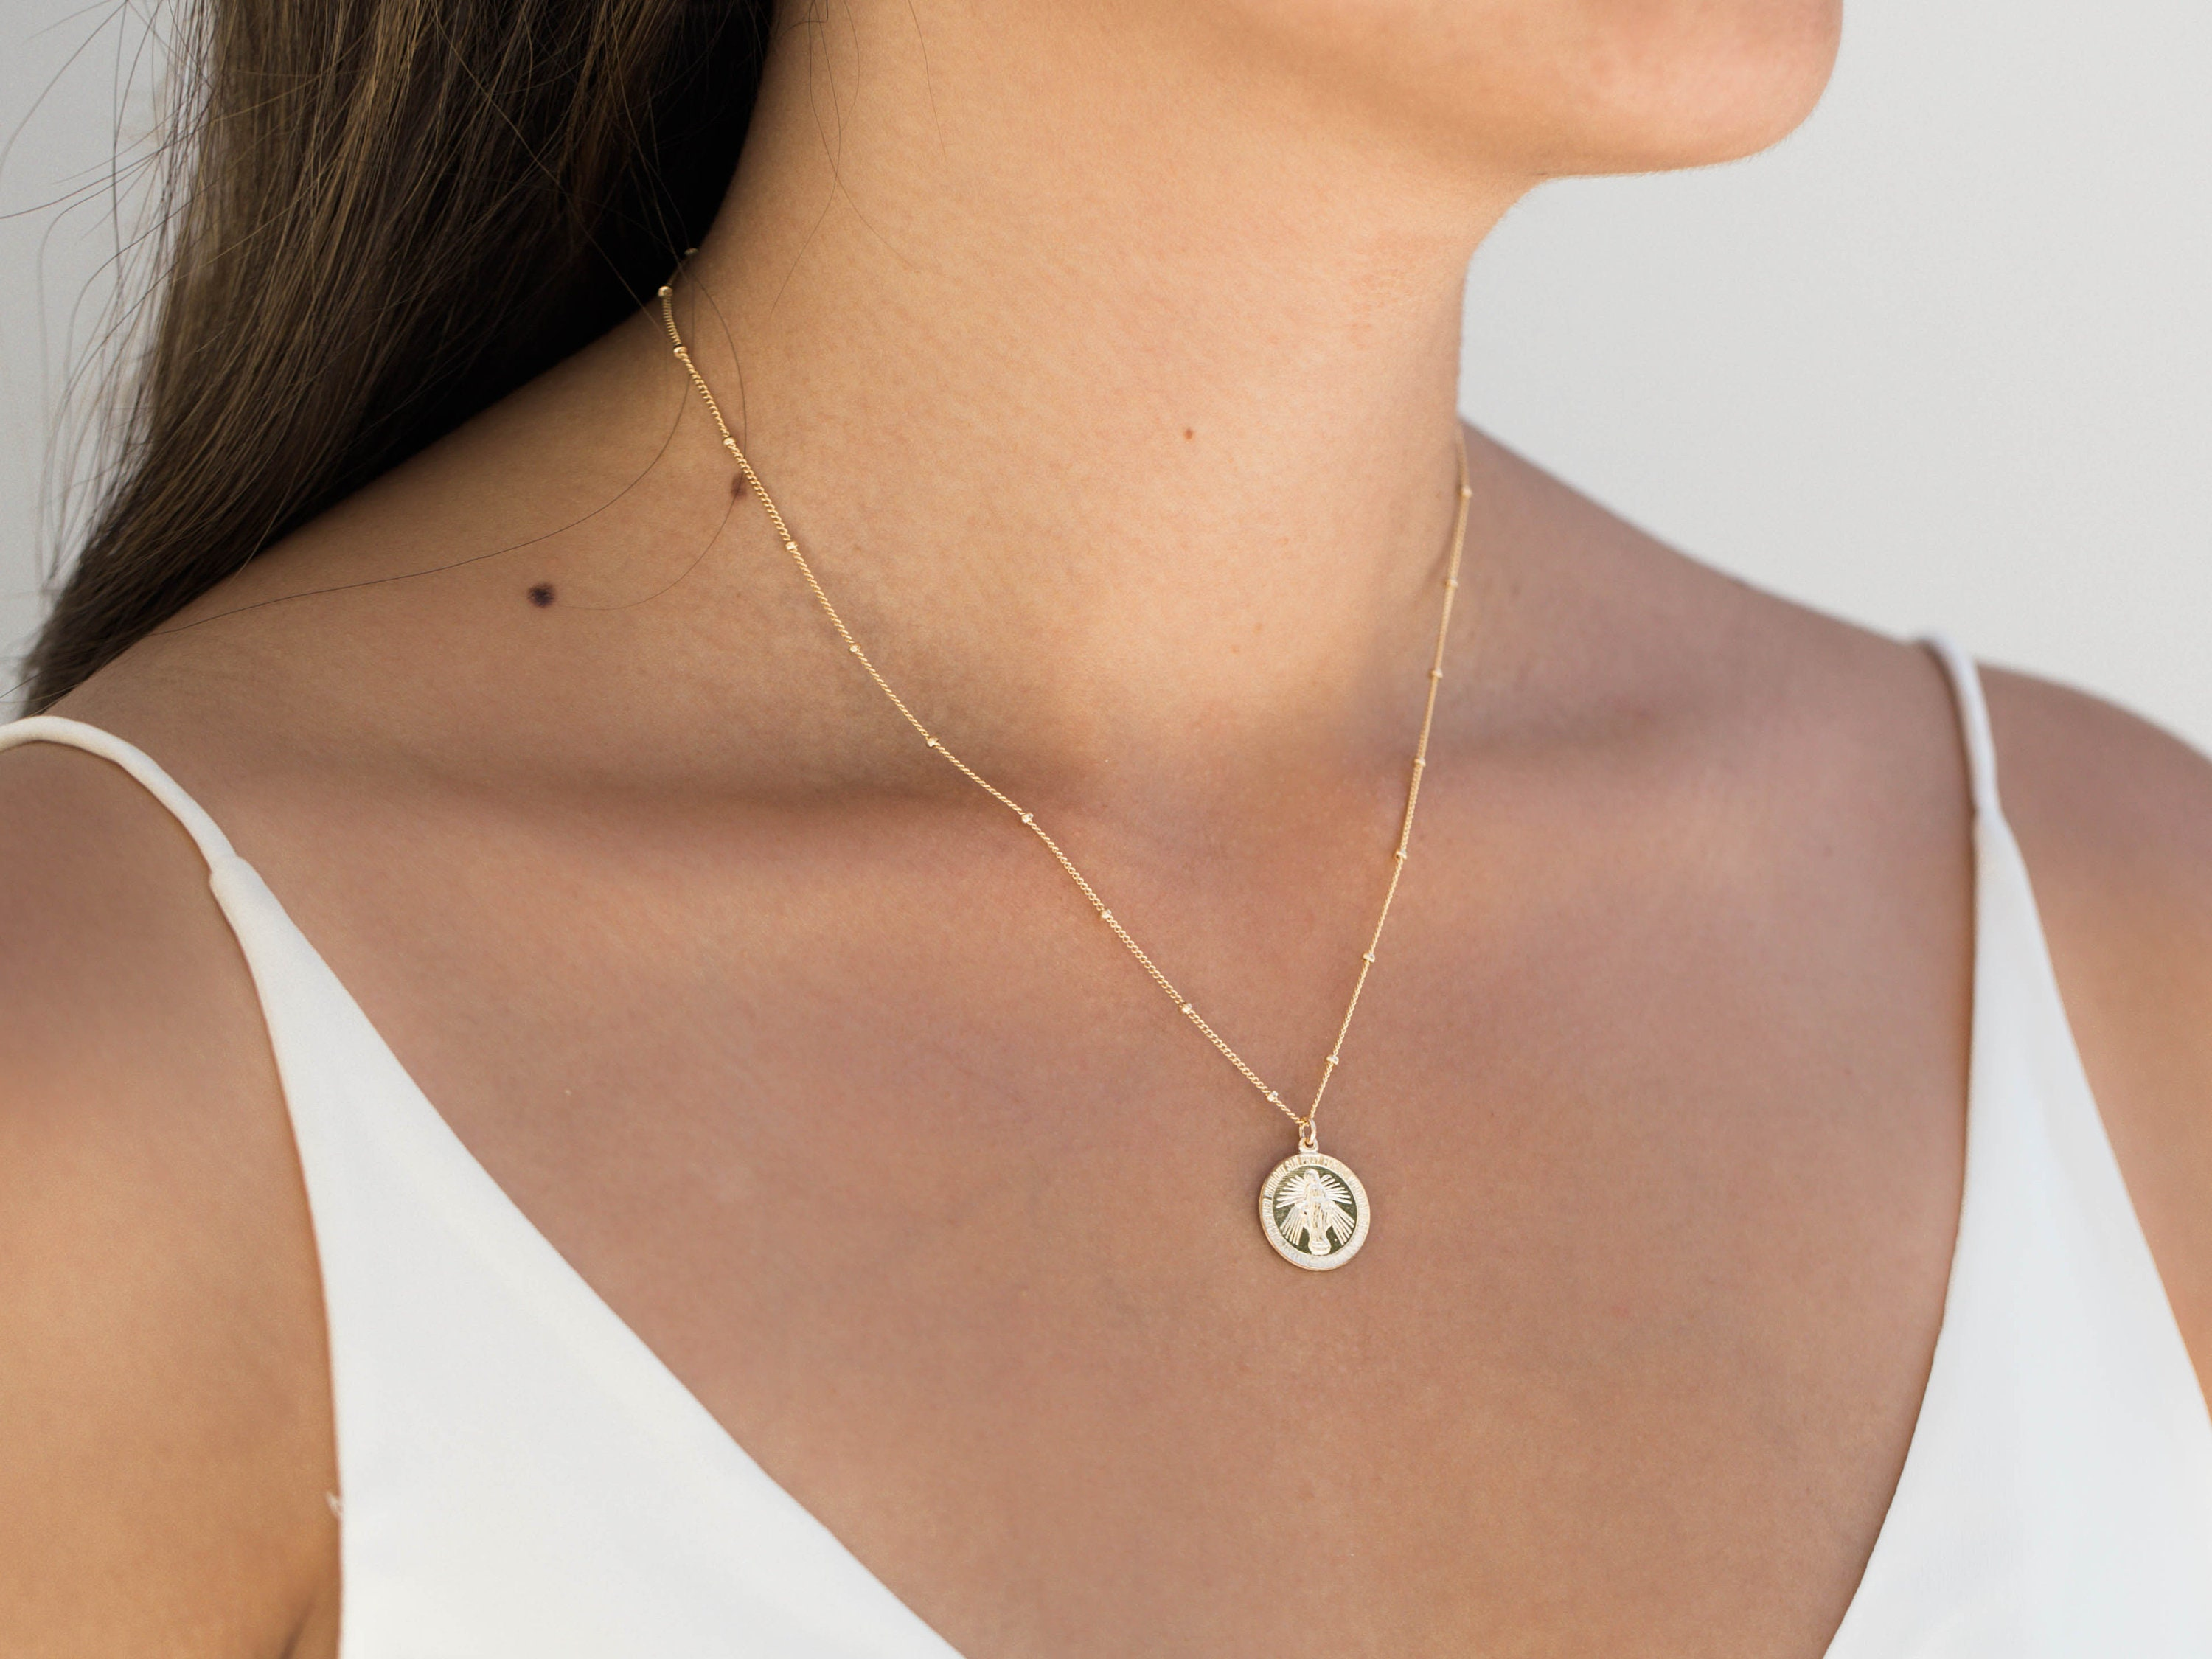 Virgin Mary Necklace religious  jewelry Miraculous Mary|-on a gold filled beaded 16\u201d chain or a black leather cord Mother Mary Necklace